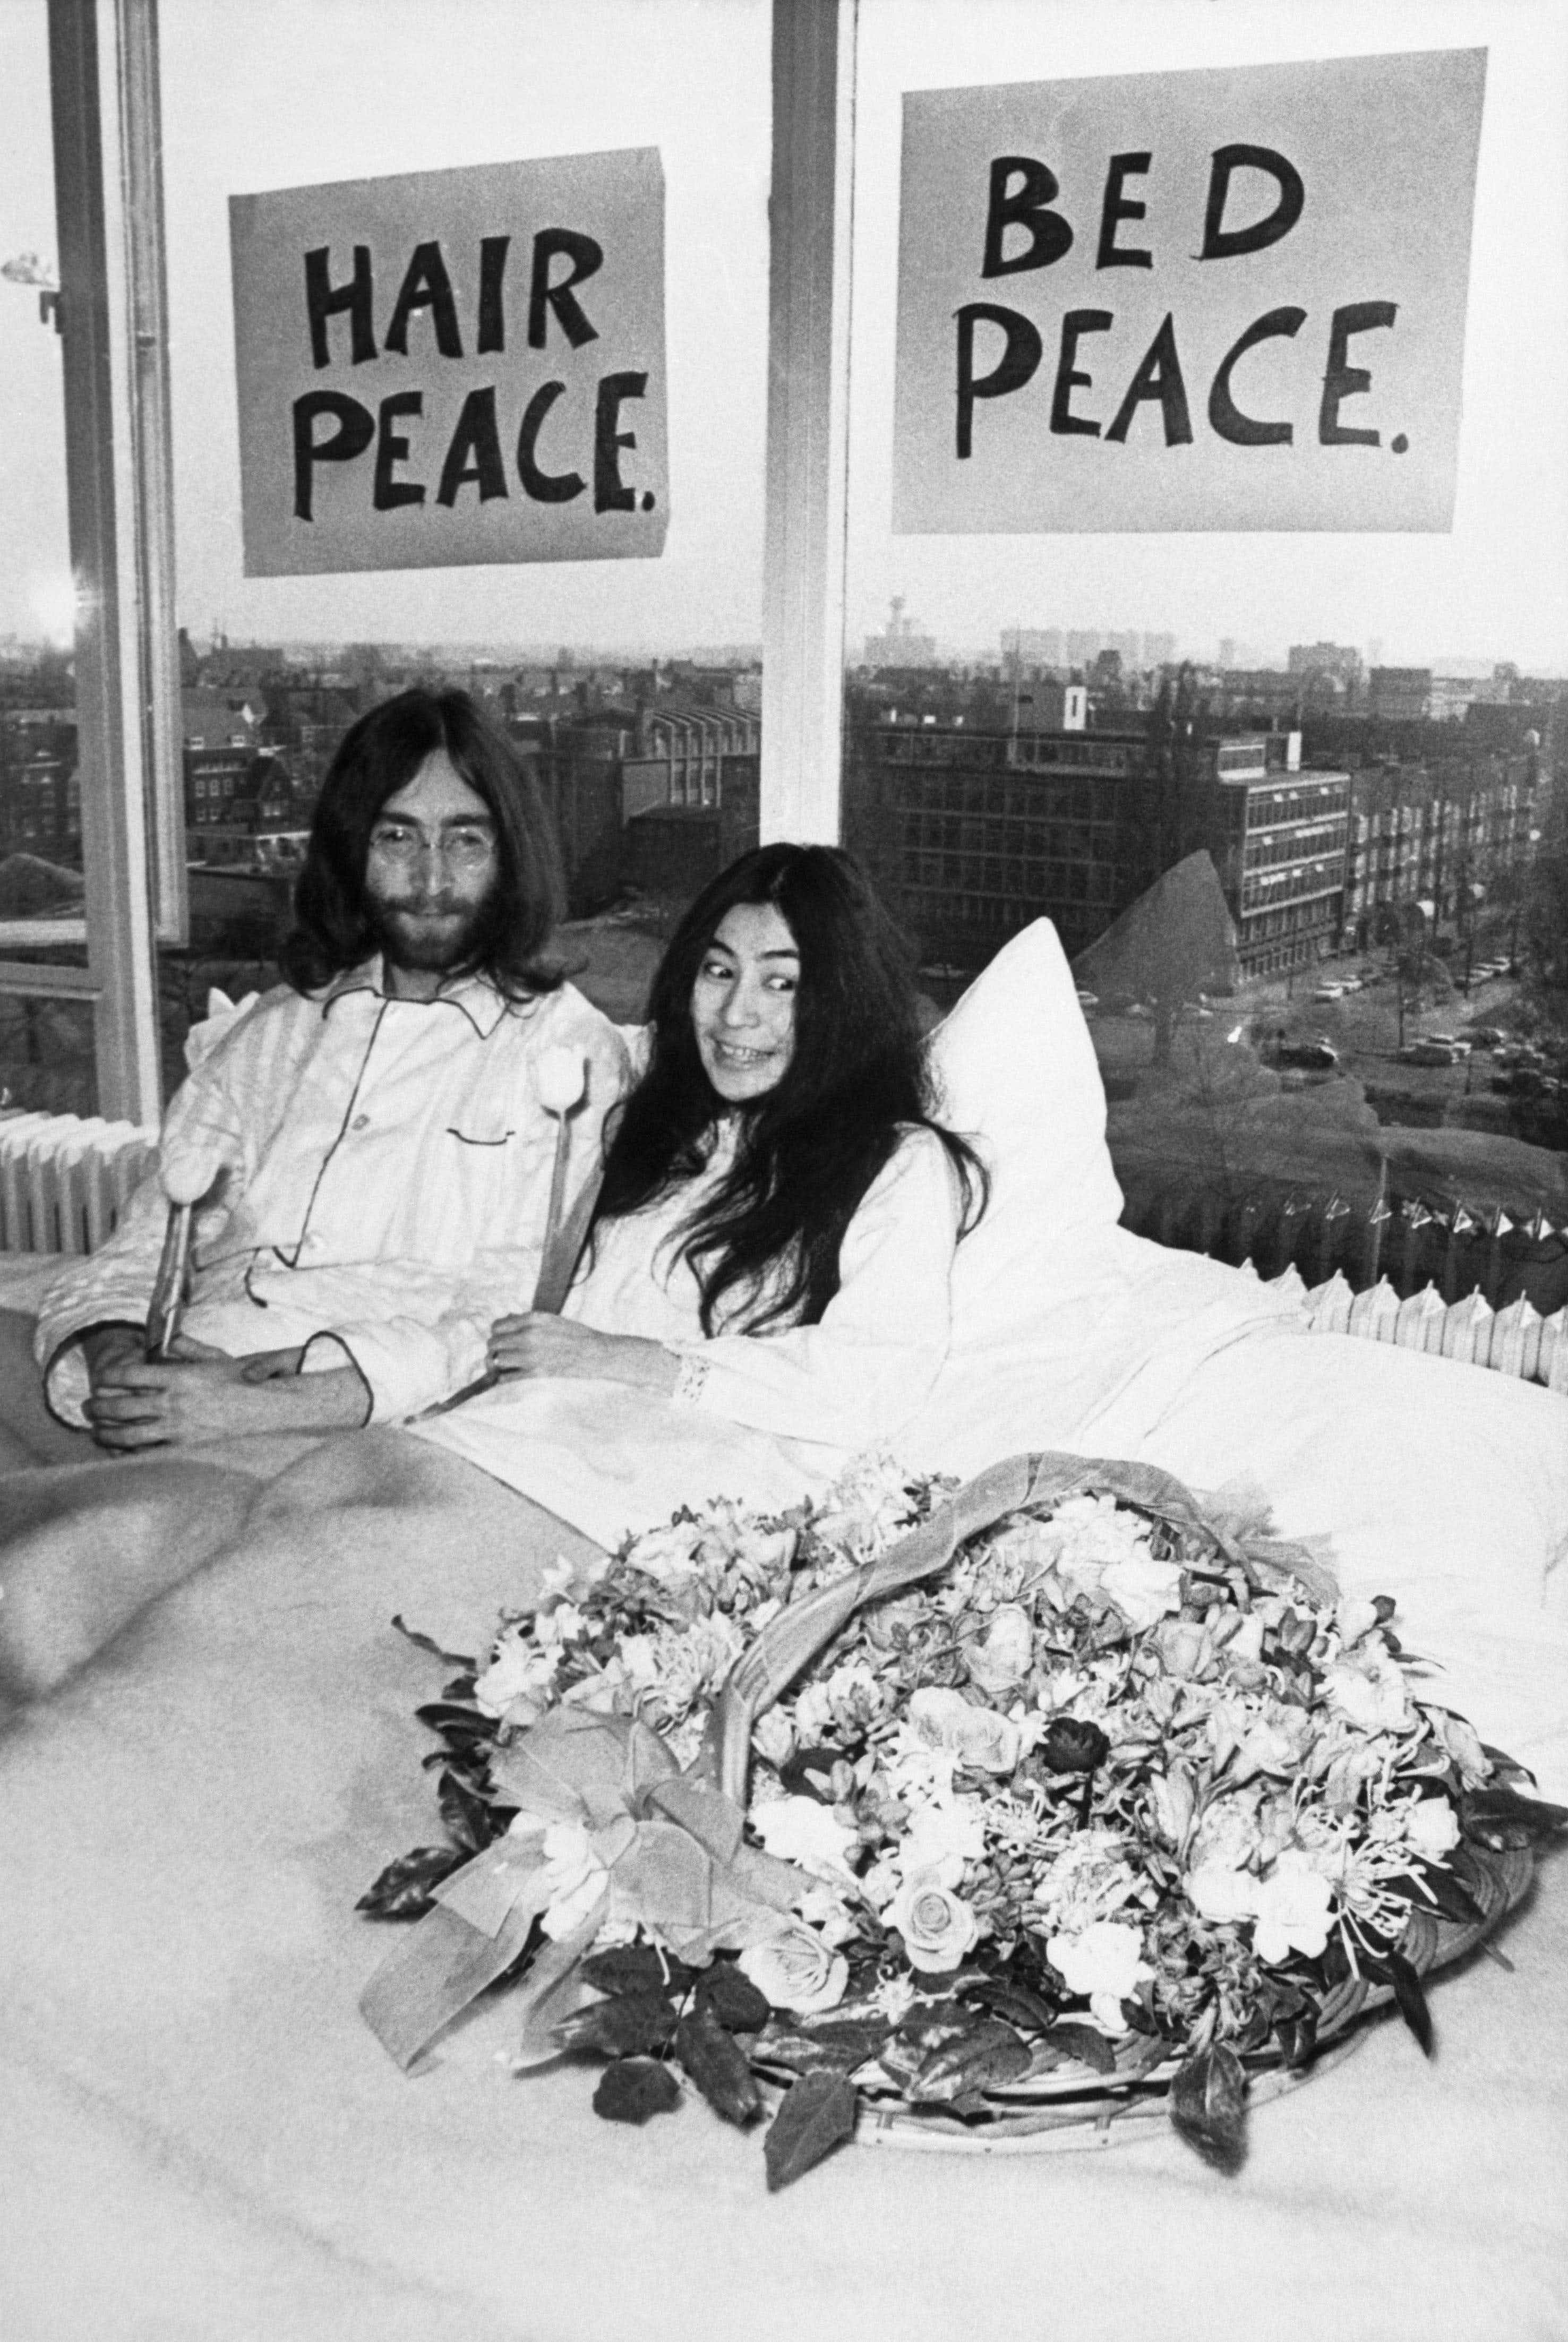 The hotel where John Lennon & Yoko Ono held their Bed-In has a new look